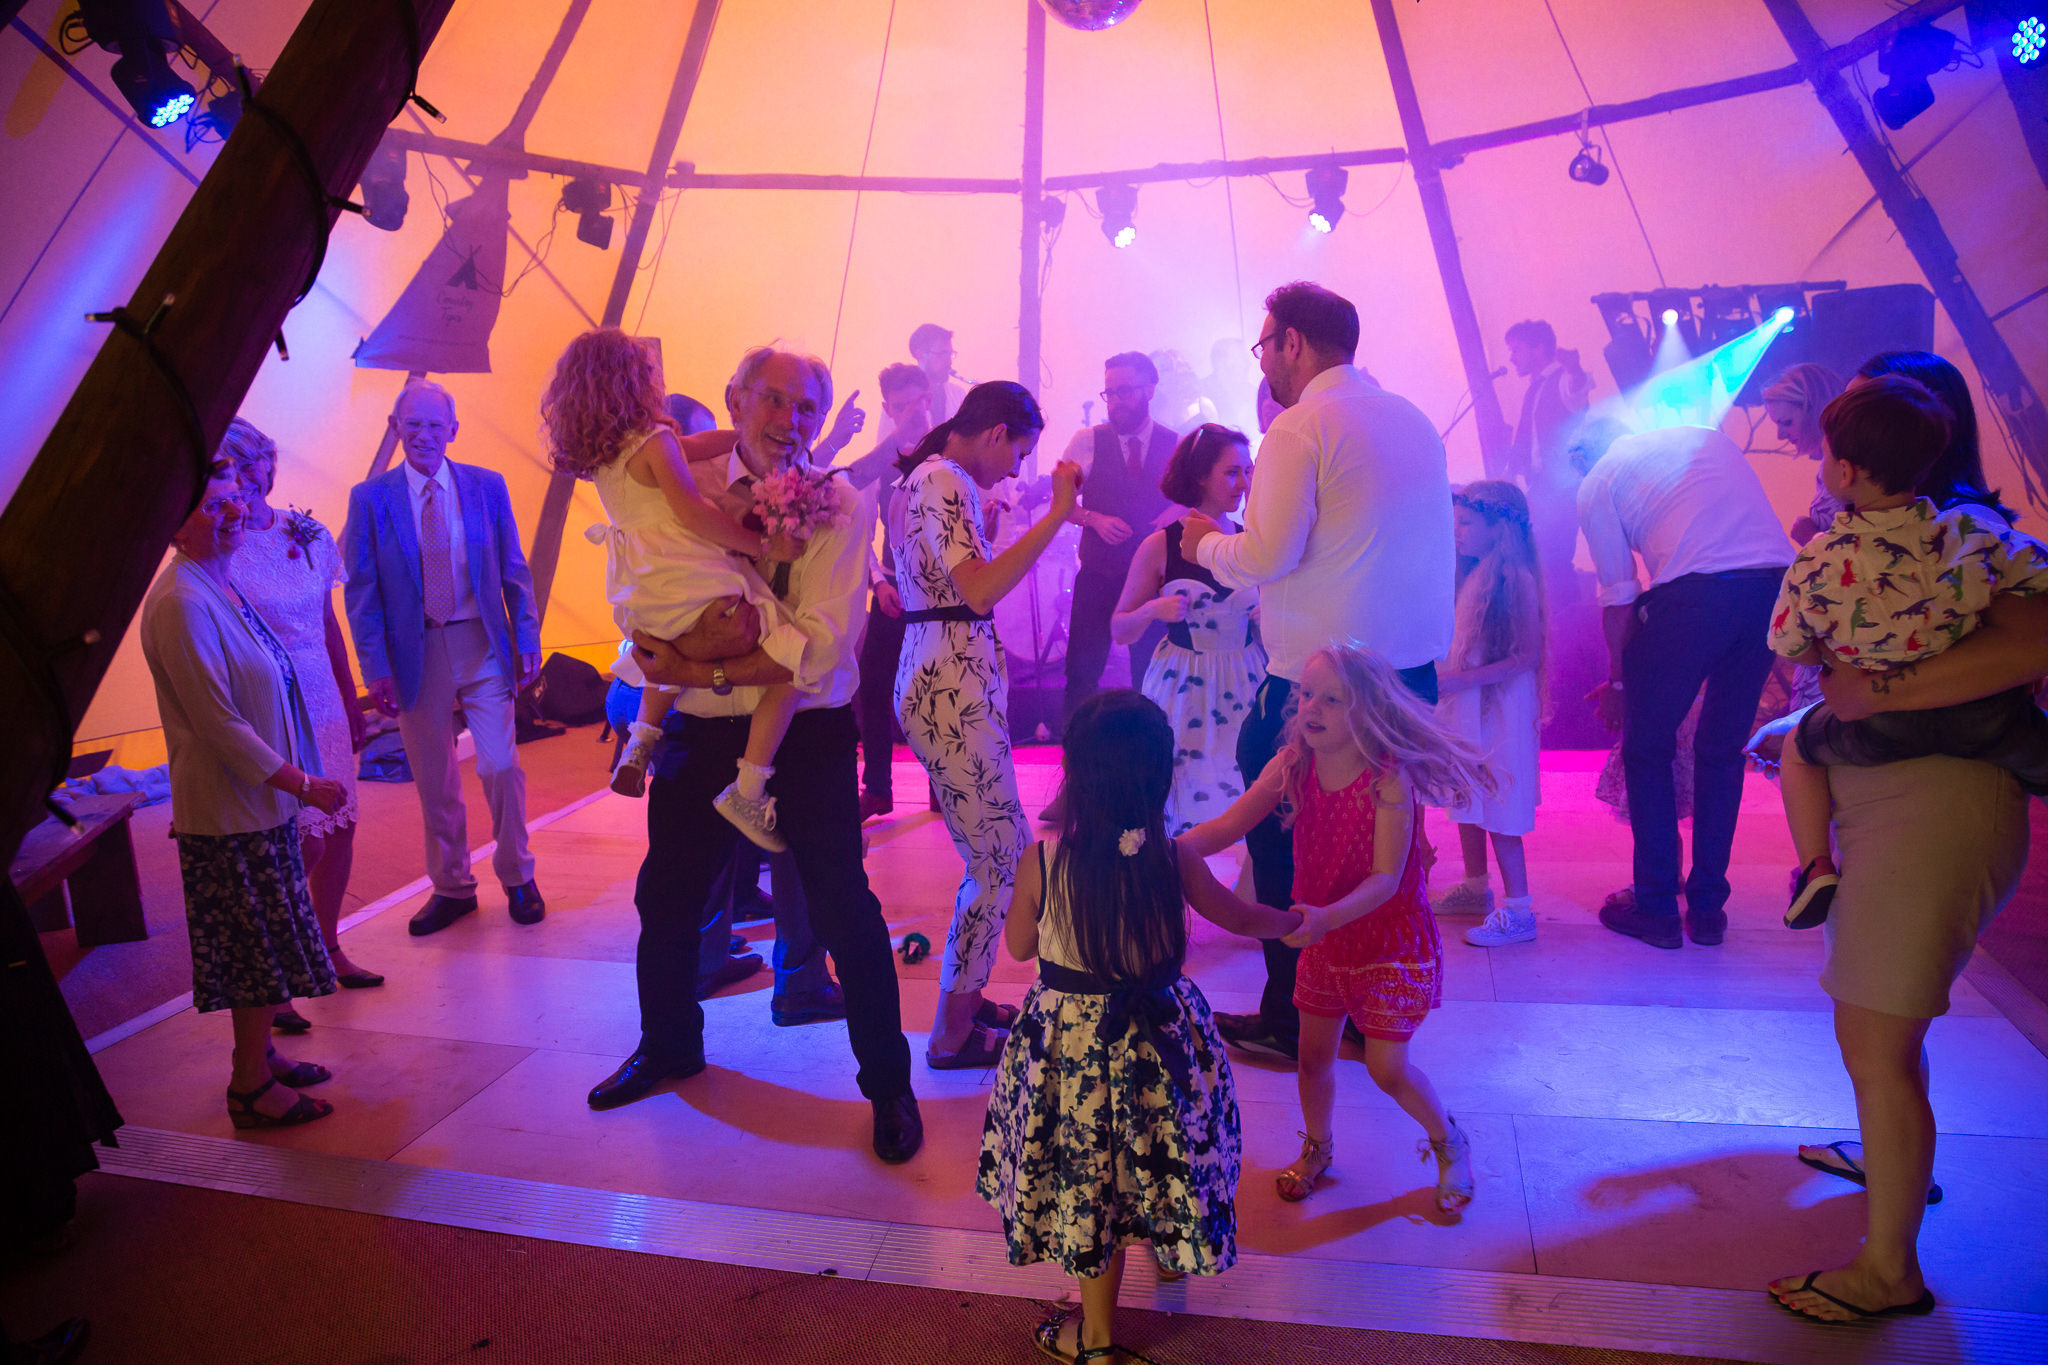 Wedding guests dancing in the tipi